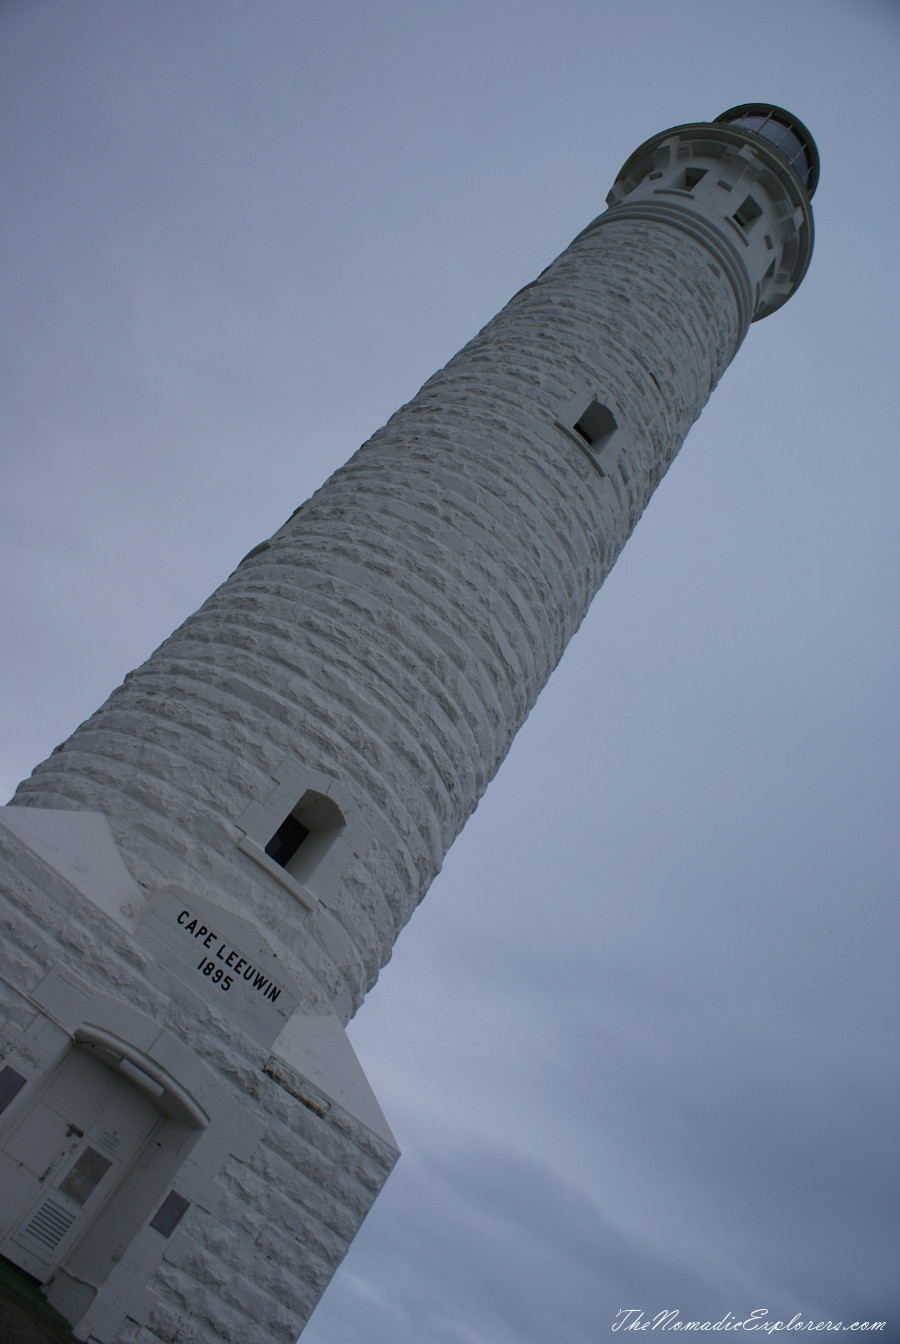 Australia, Western Australia, South West, Western Australia Trip. Day 7. Cape Leeuwin Lighthouse , ,